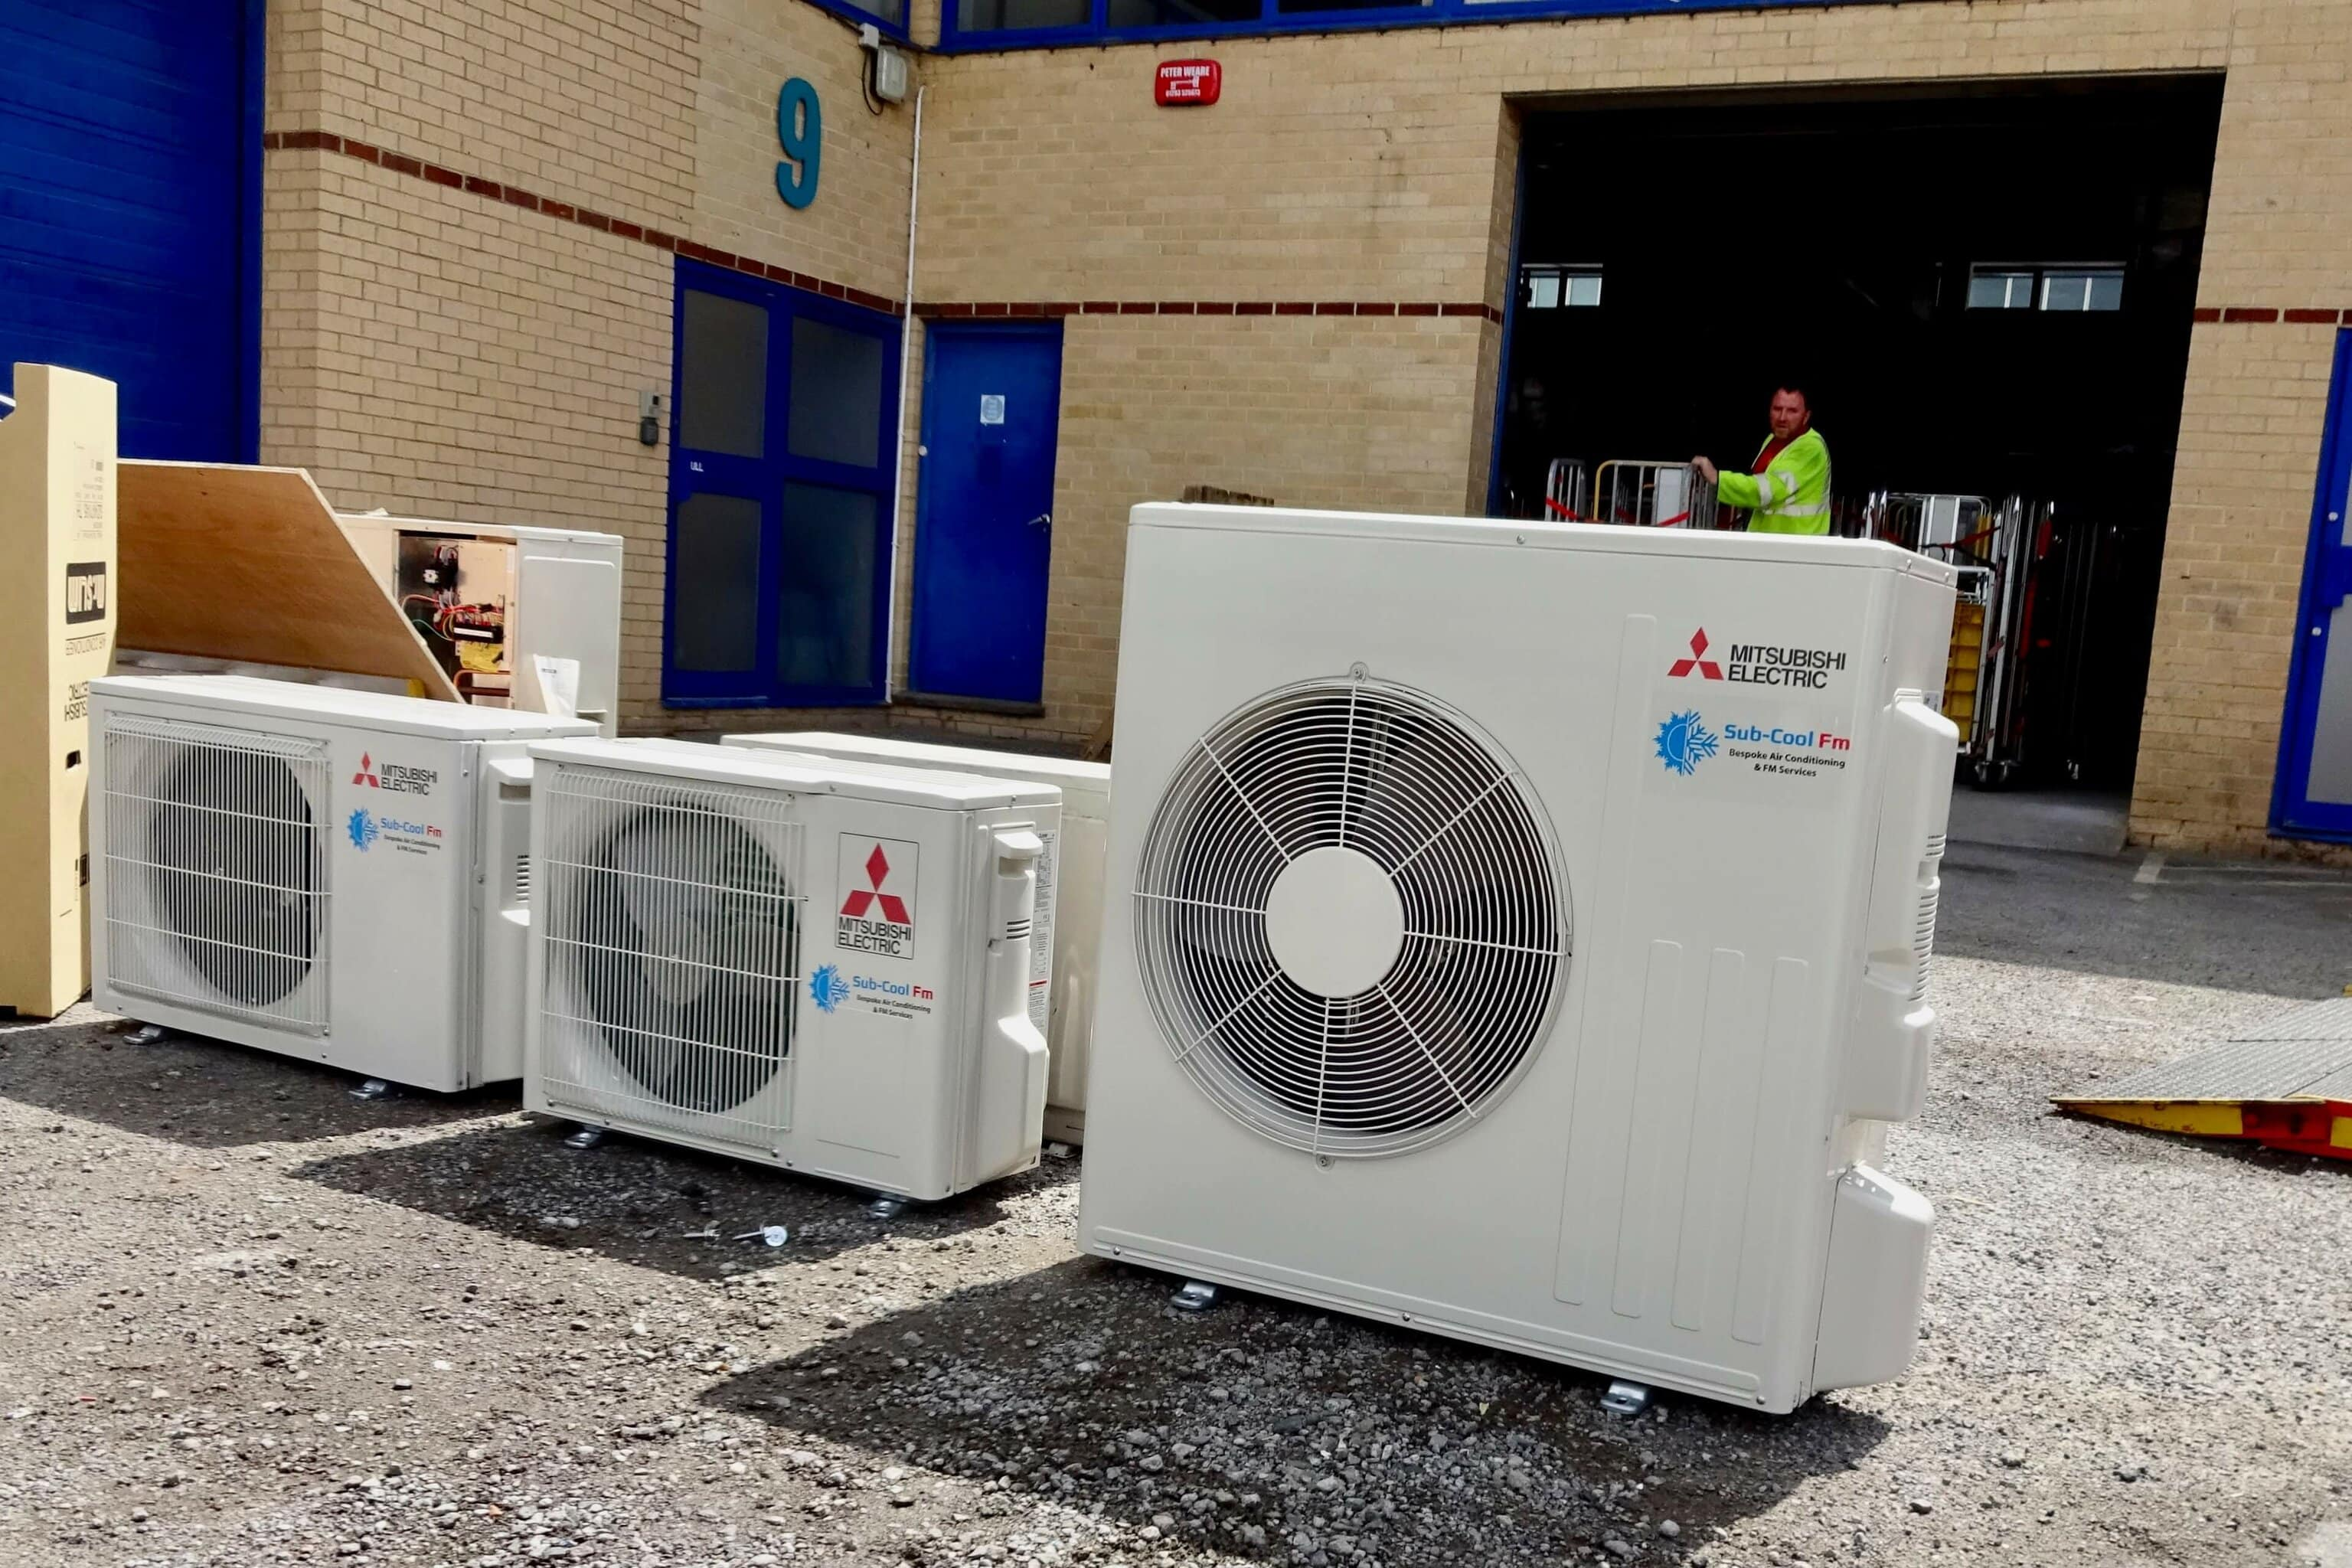 Brand new Mitsubishi air conditioning units